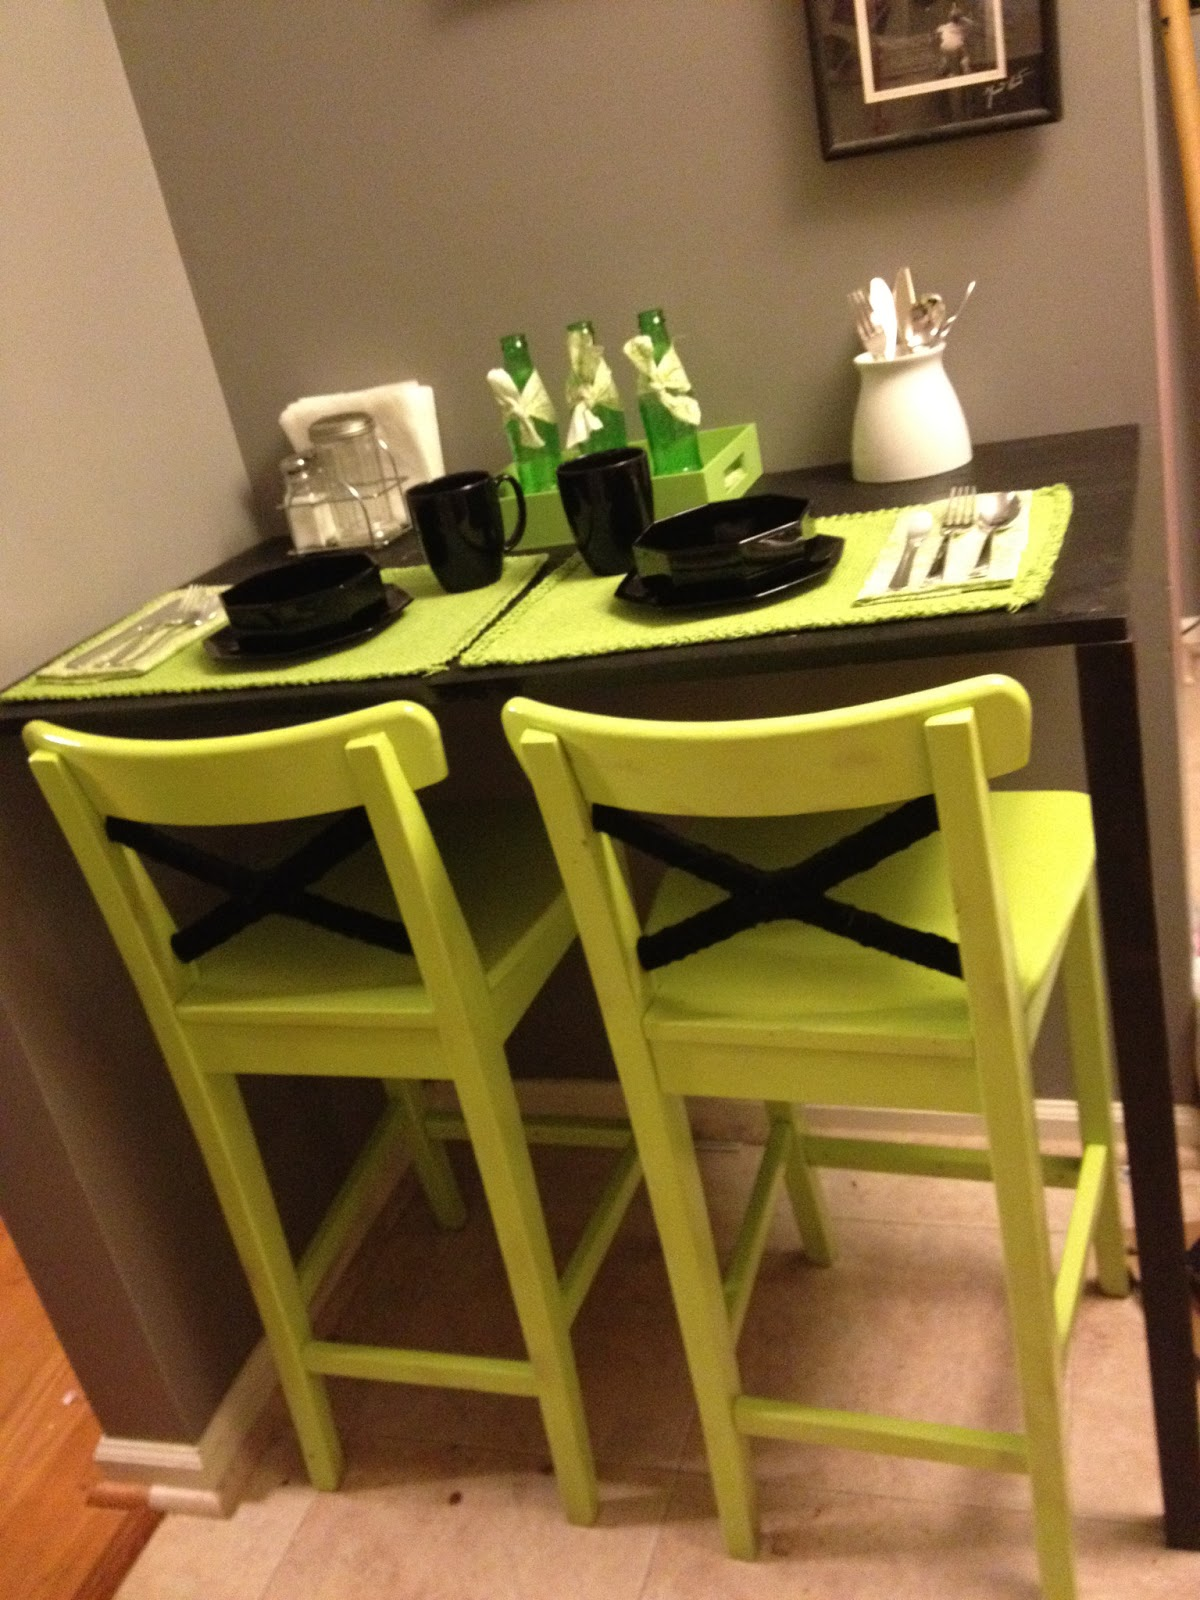 madcap frenzy graphic design diy and everything in between diy breakfast nook and ikea stool. Black Bedroom Furniture Sets. Home Design Ideas